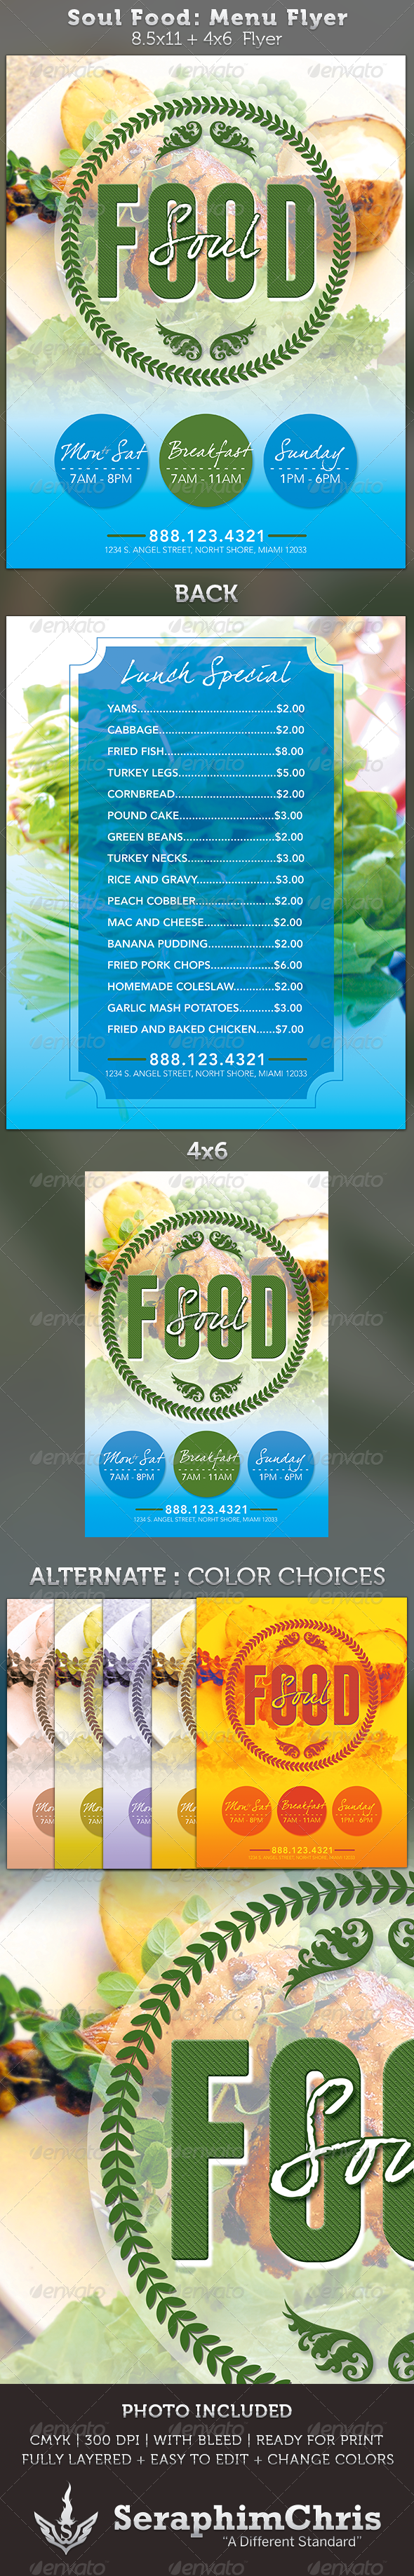 Soul Food Menu Flyer Template - Restaurant Flyers